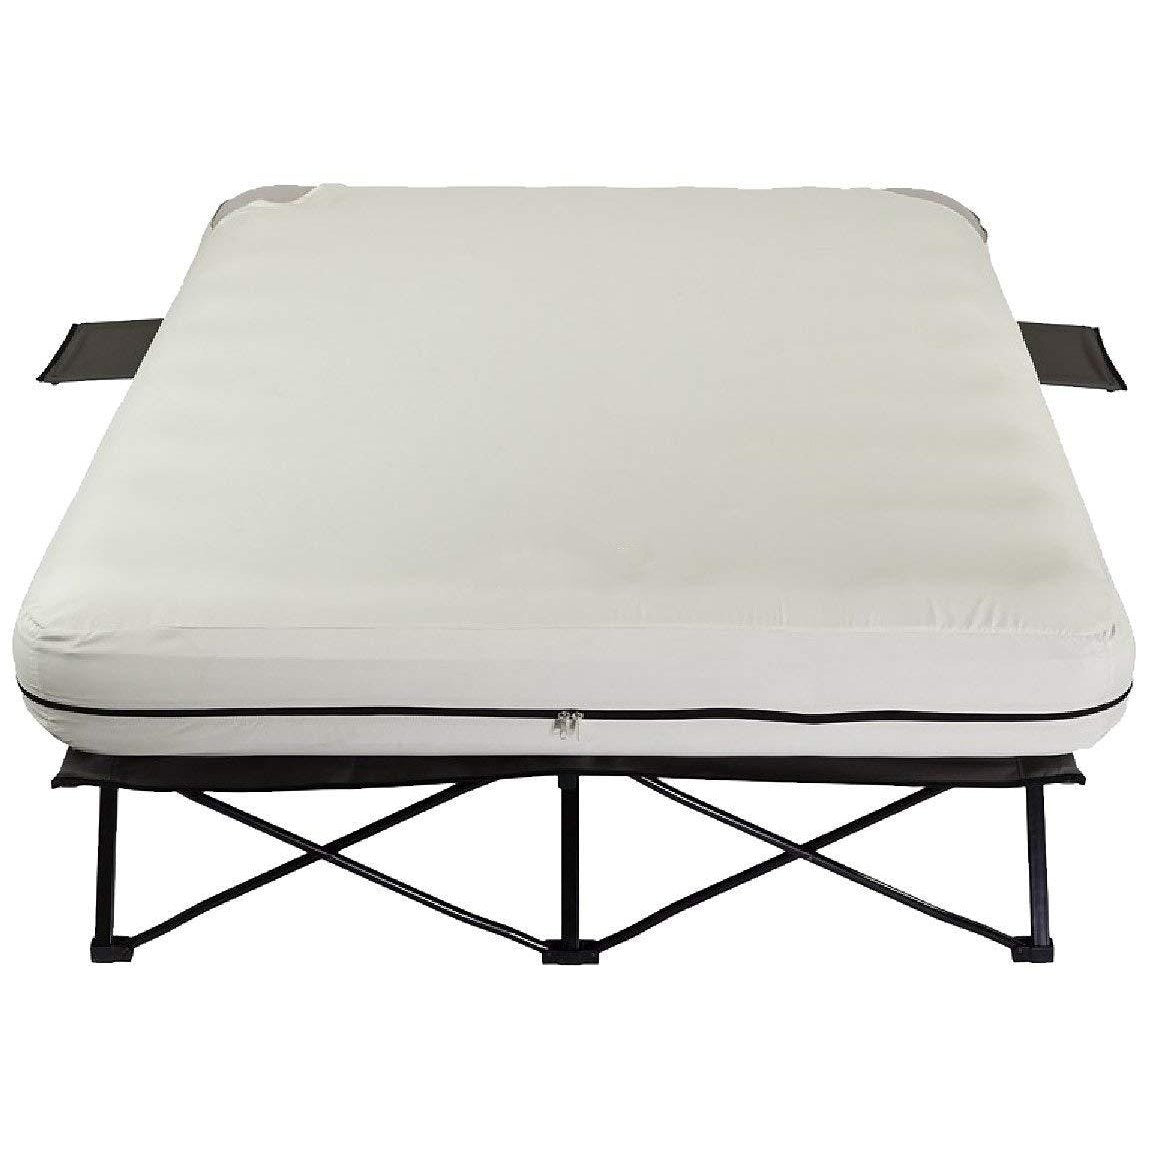 Portable Comfortable Air Mattress